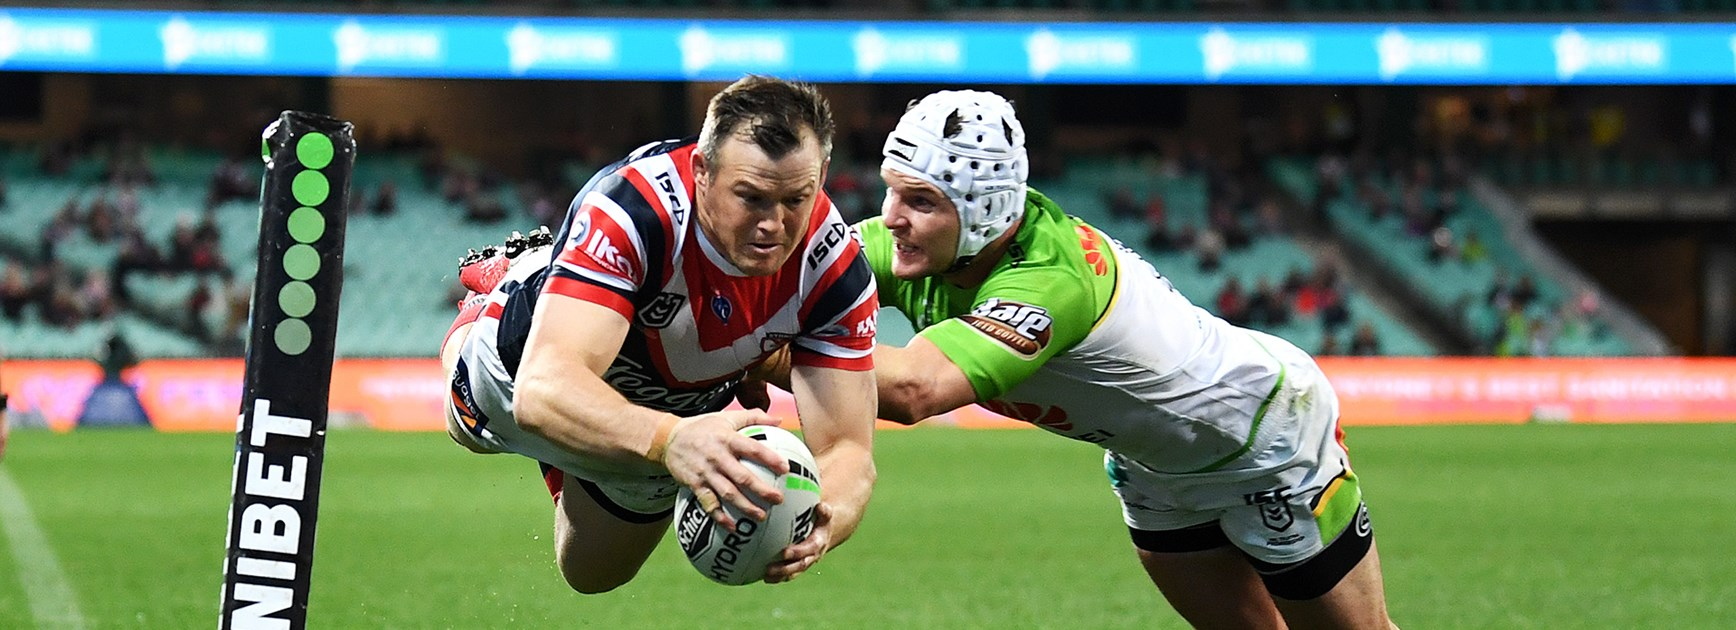 Match Preview | Roosters v Raiders